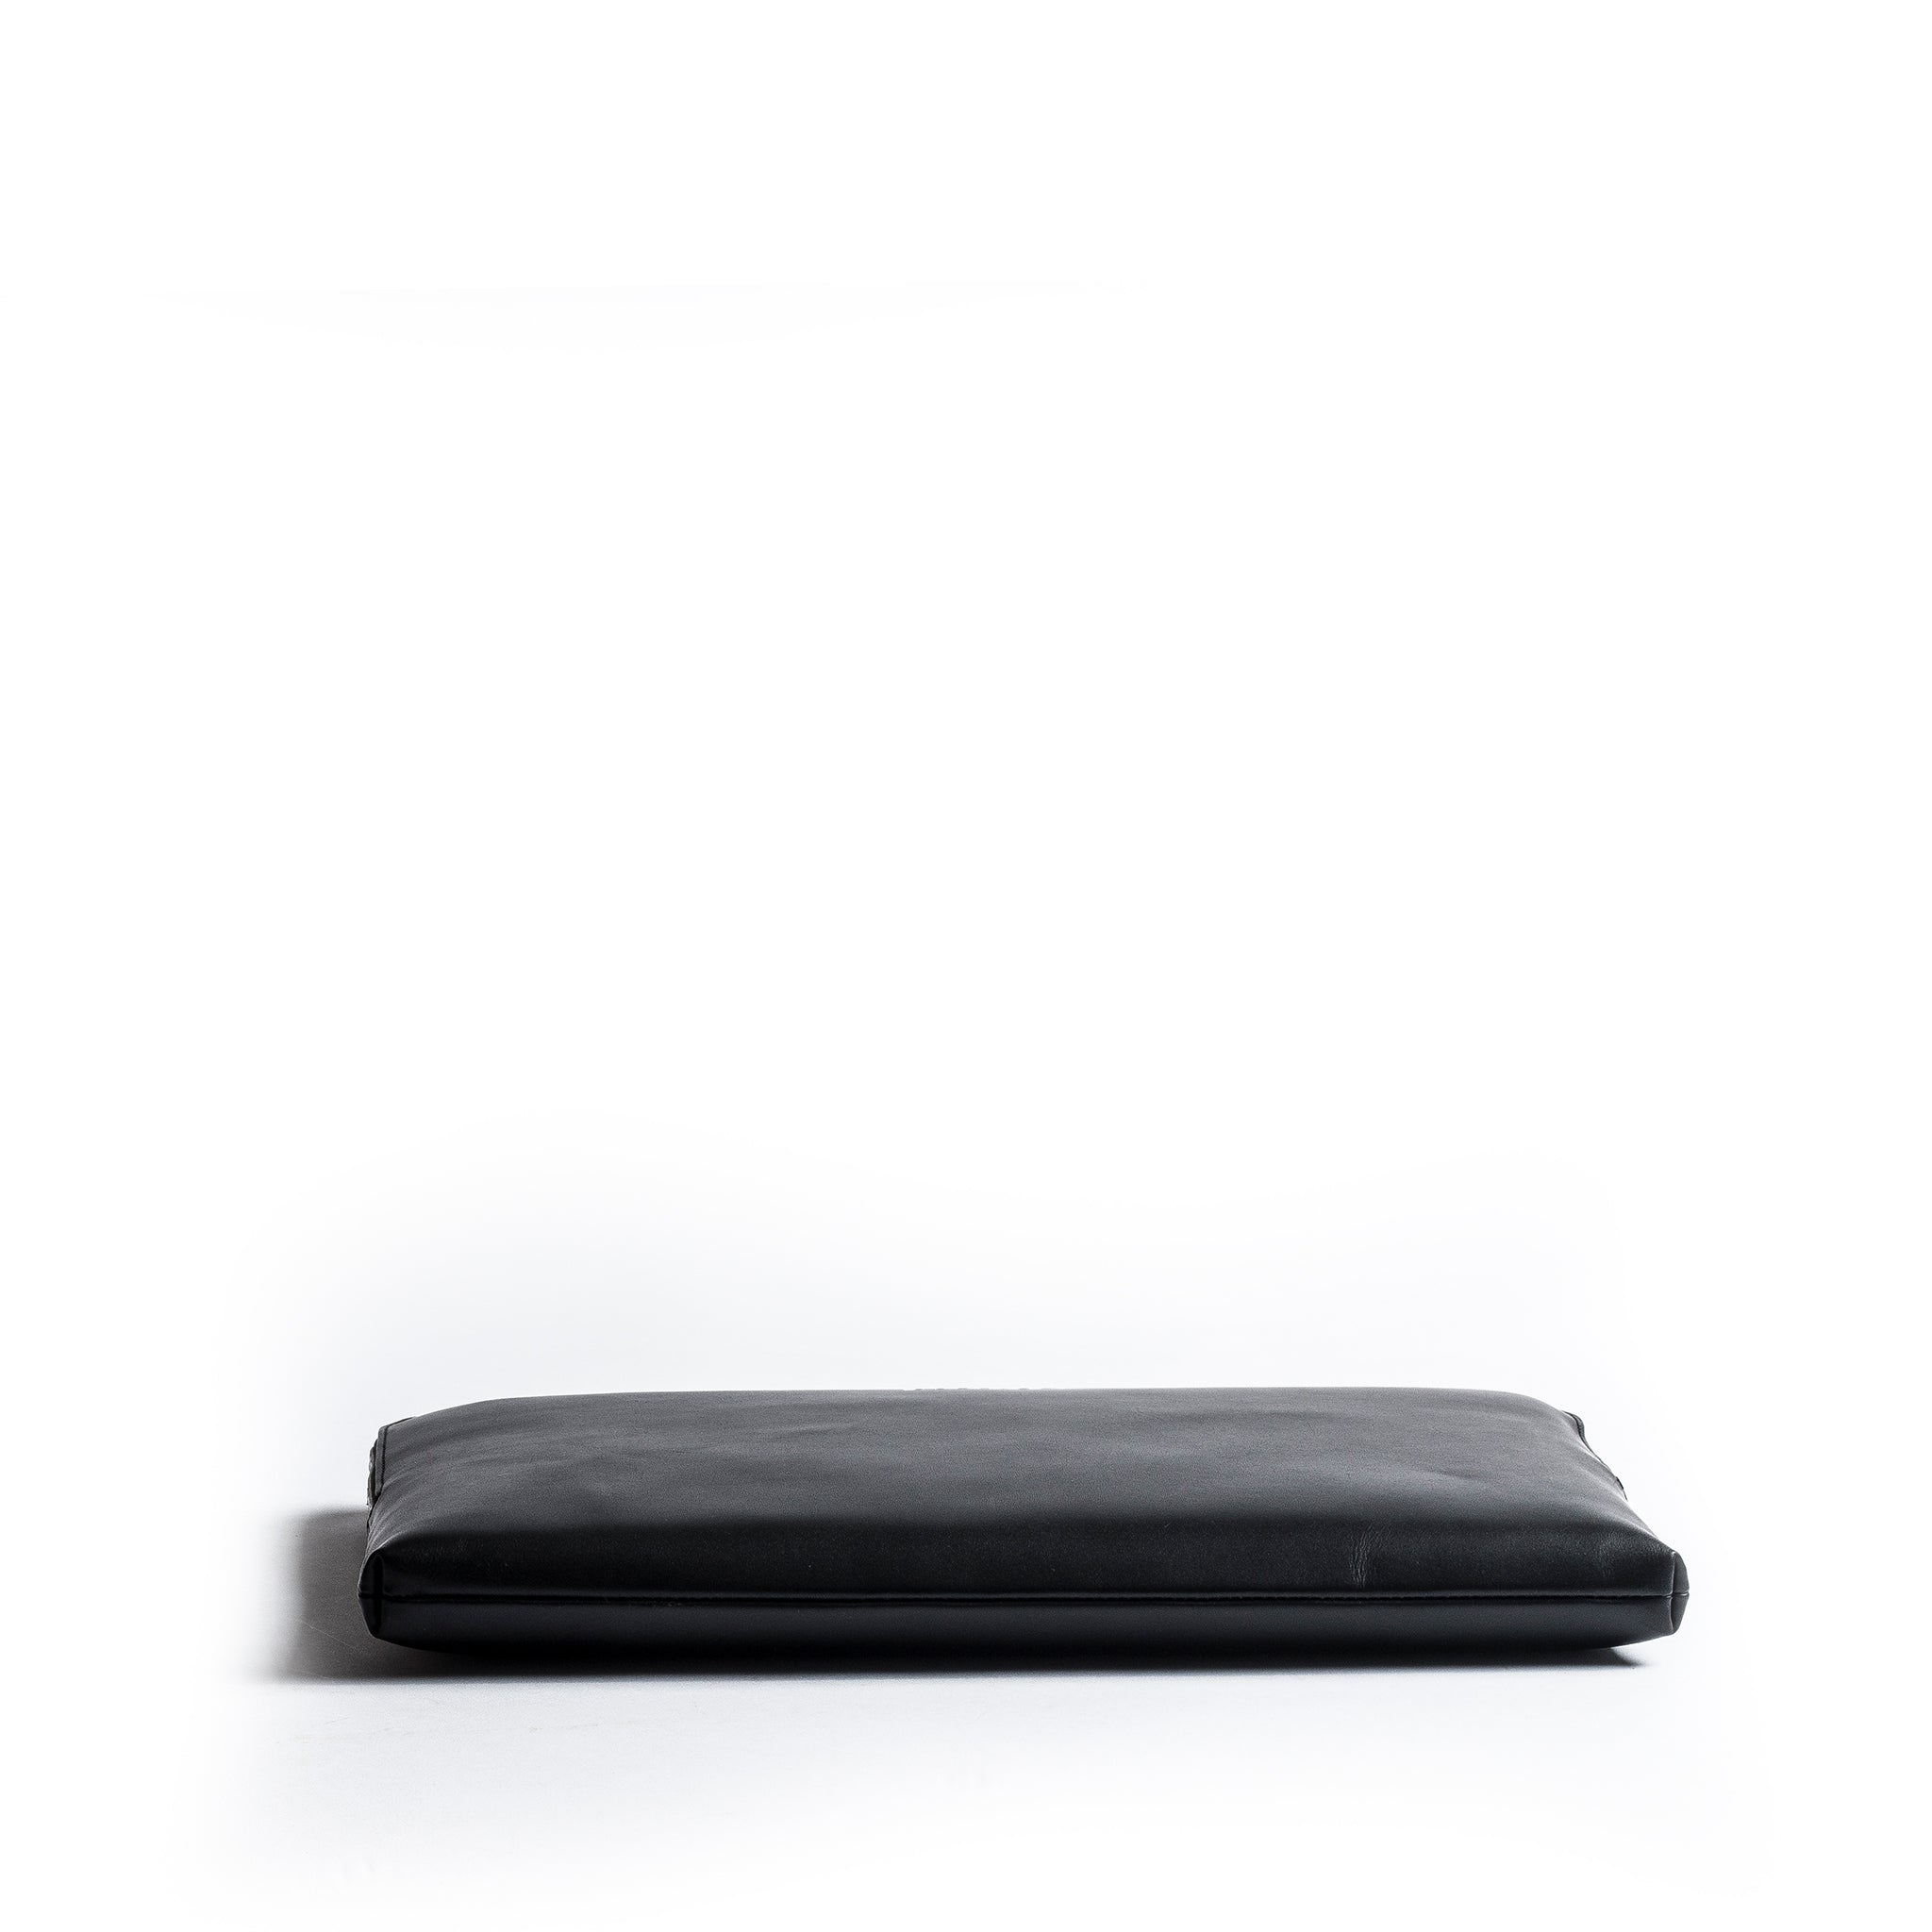 lundi black leather laptop sleeve